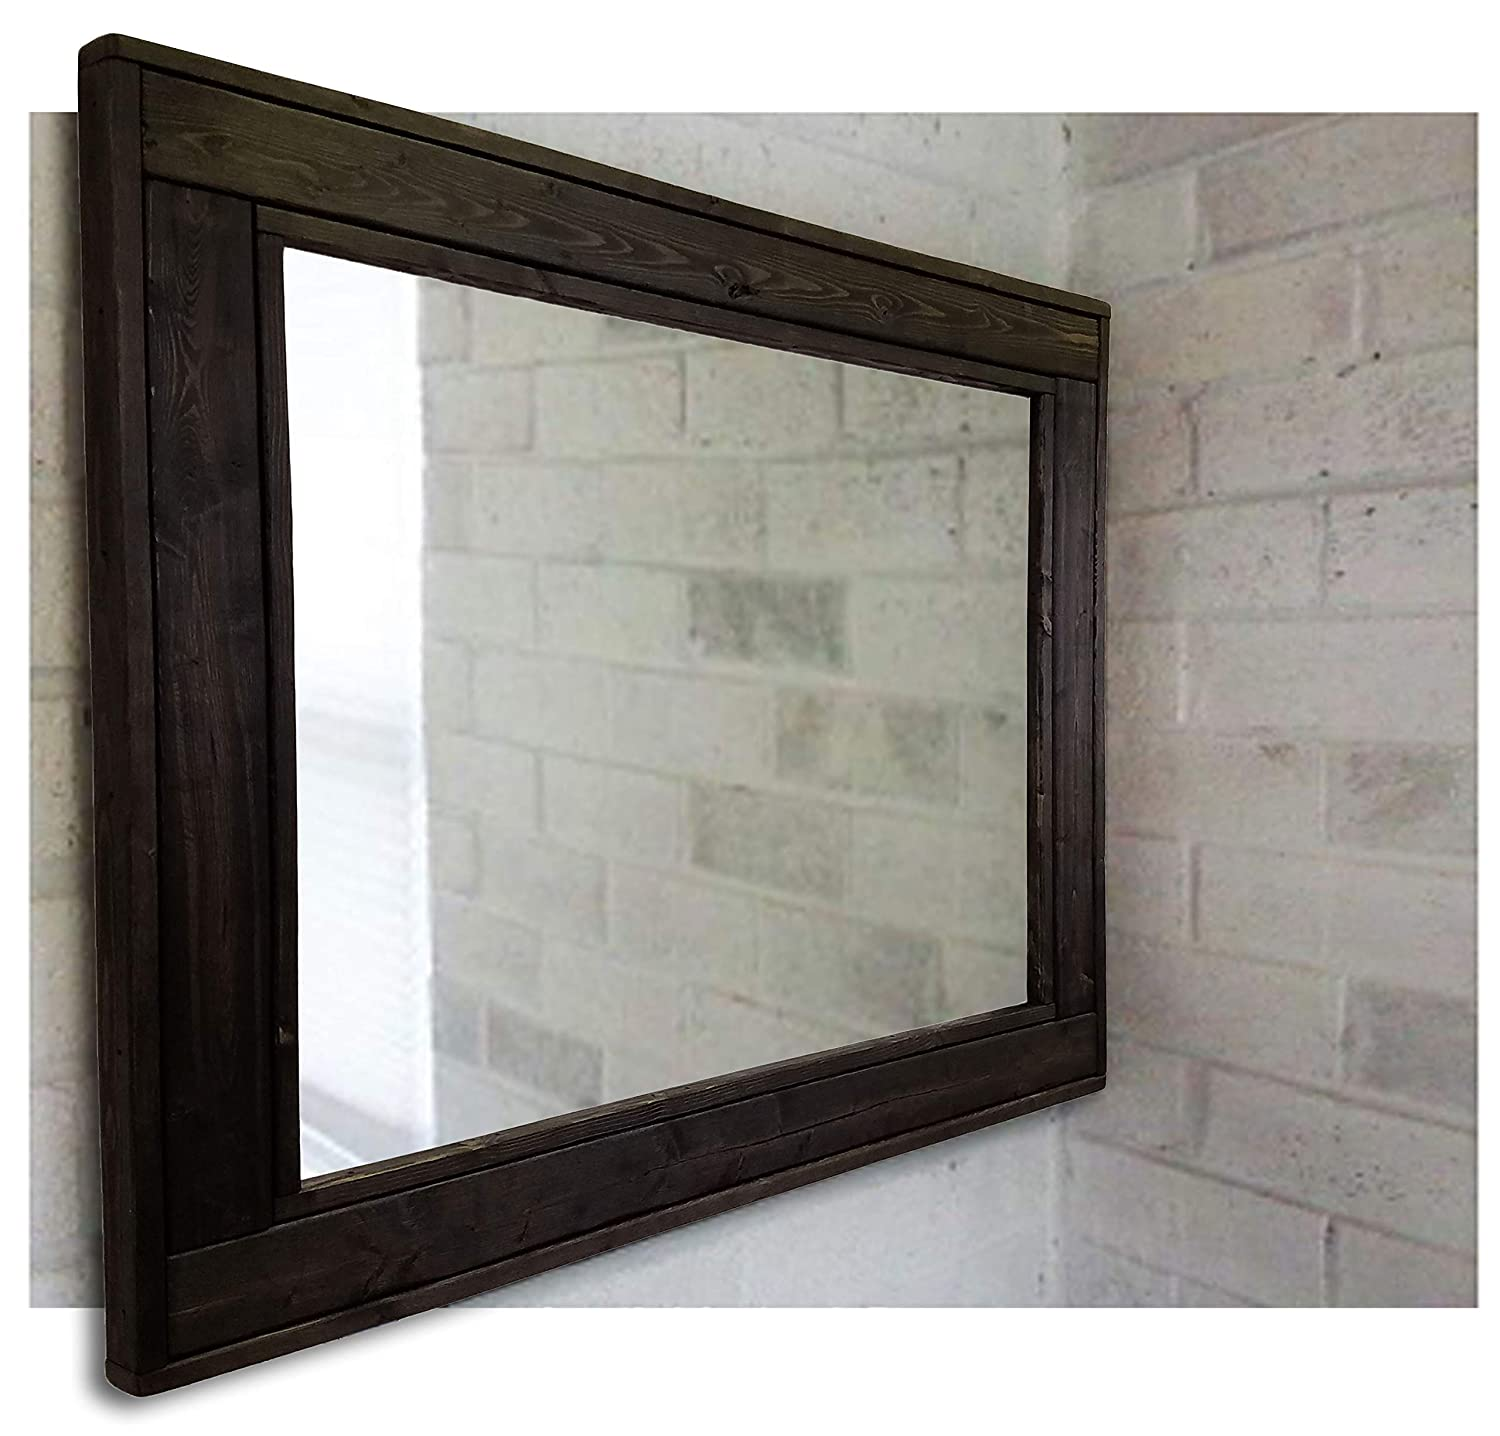 Available in 4 Sizes and 20 Stain colors: Shown in Red Chestnut Rectangular Mirror Vanity Mirror Wall Mounted Mirror Large Bathroom Mirror Herringbone Reclaimed Wood Framed Mirror